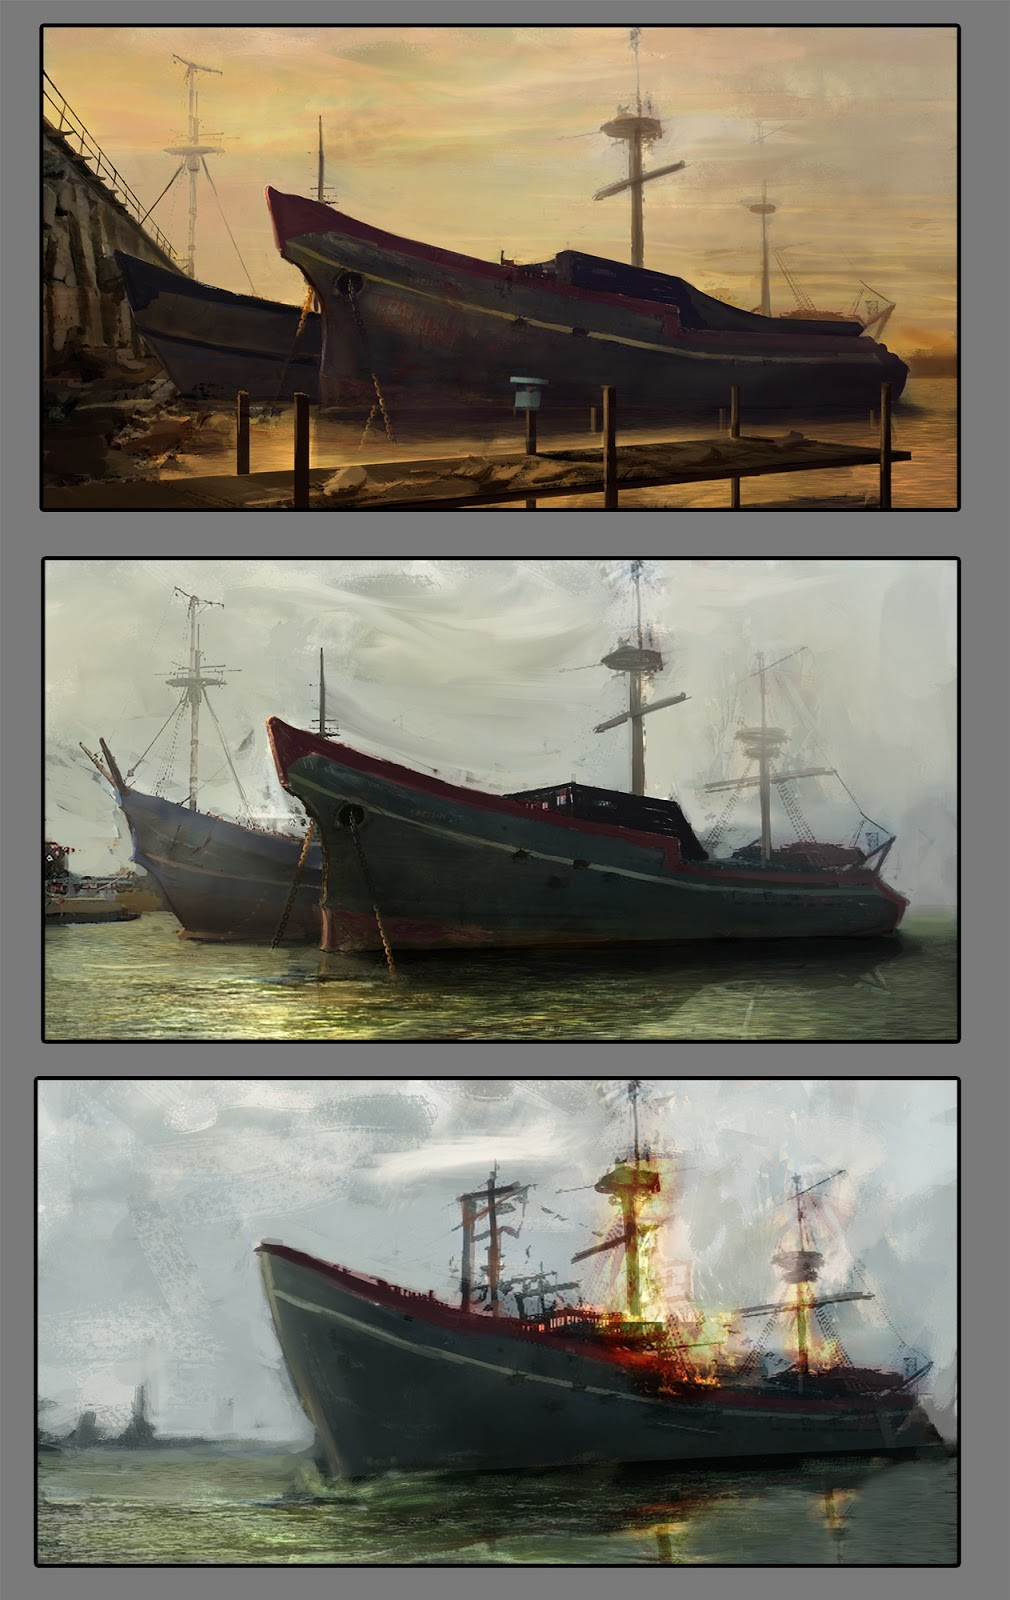 Boat quickies